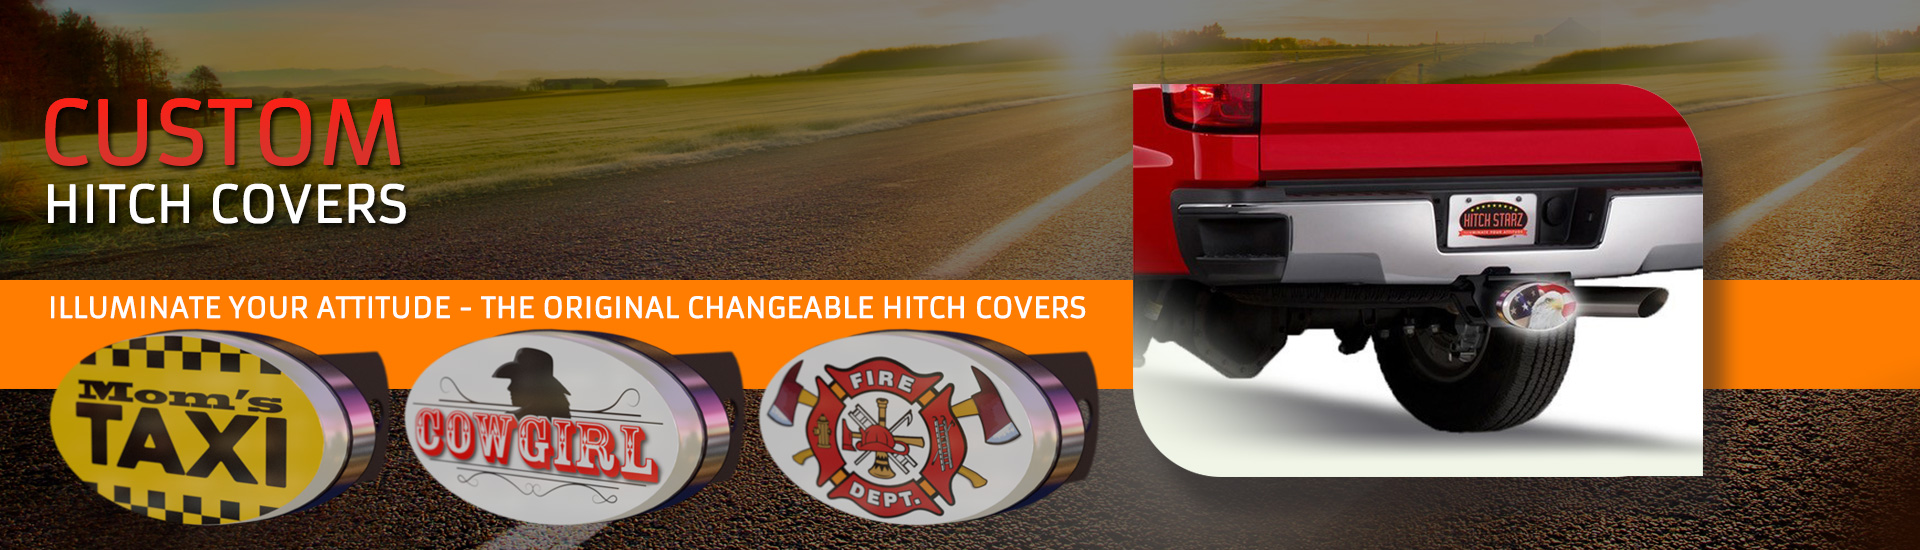 hitch-covers-slide2-new